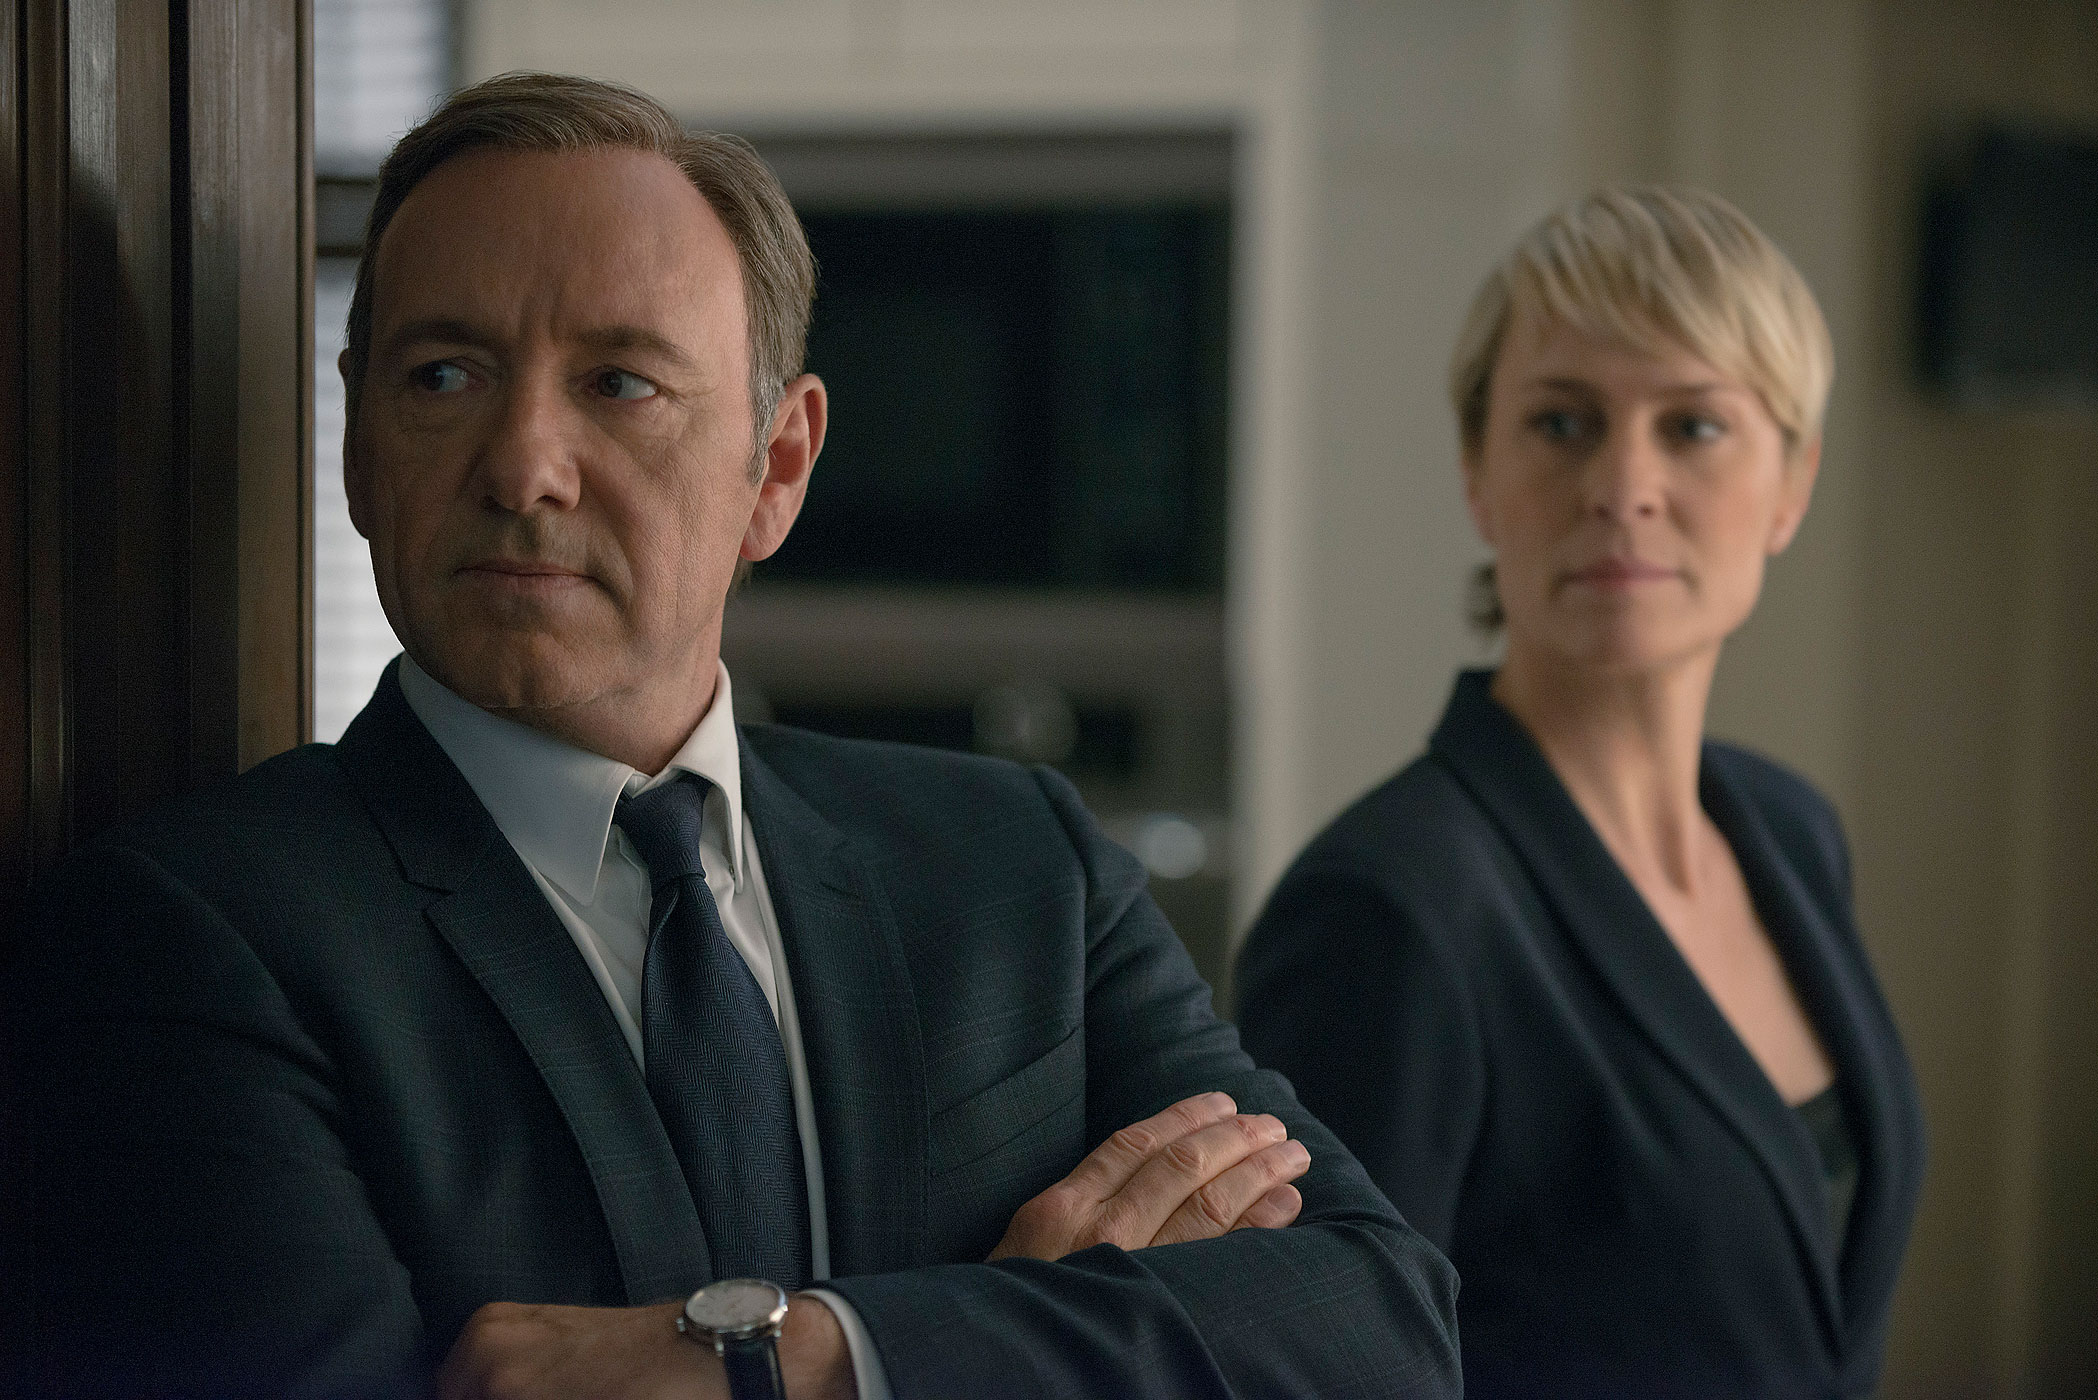 6. House of Cards (Netflix) - 56,881 average users pirating worldwide per day